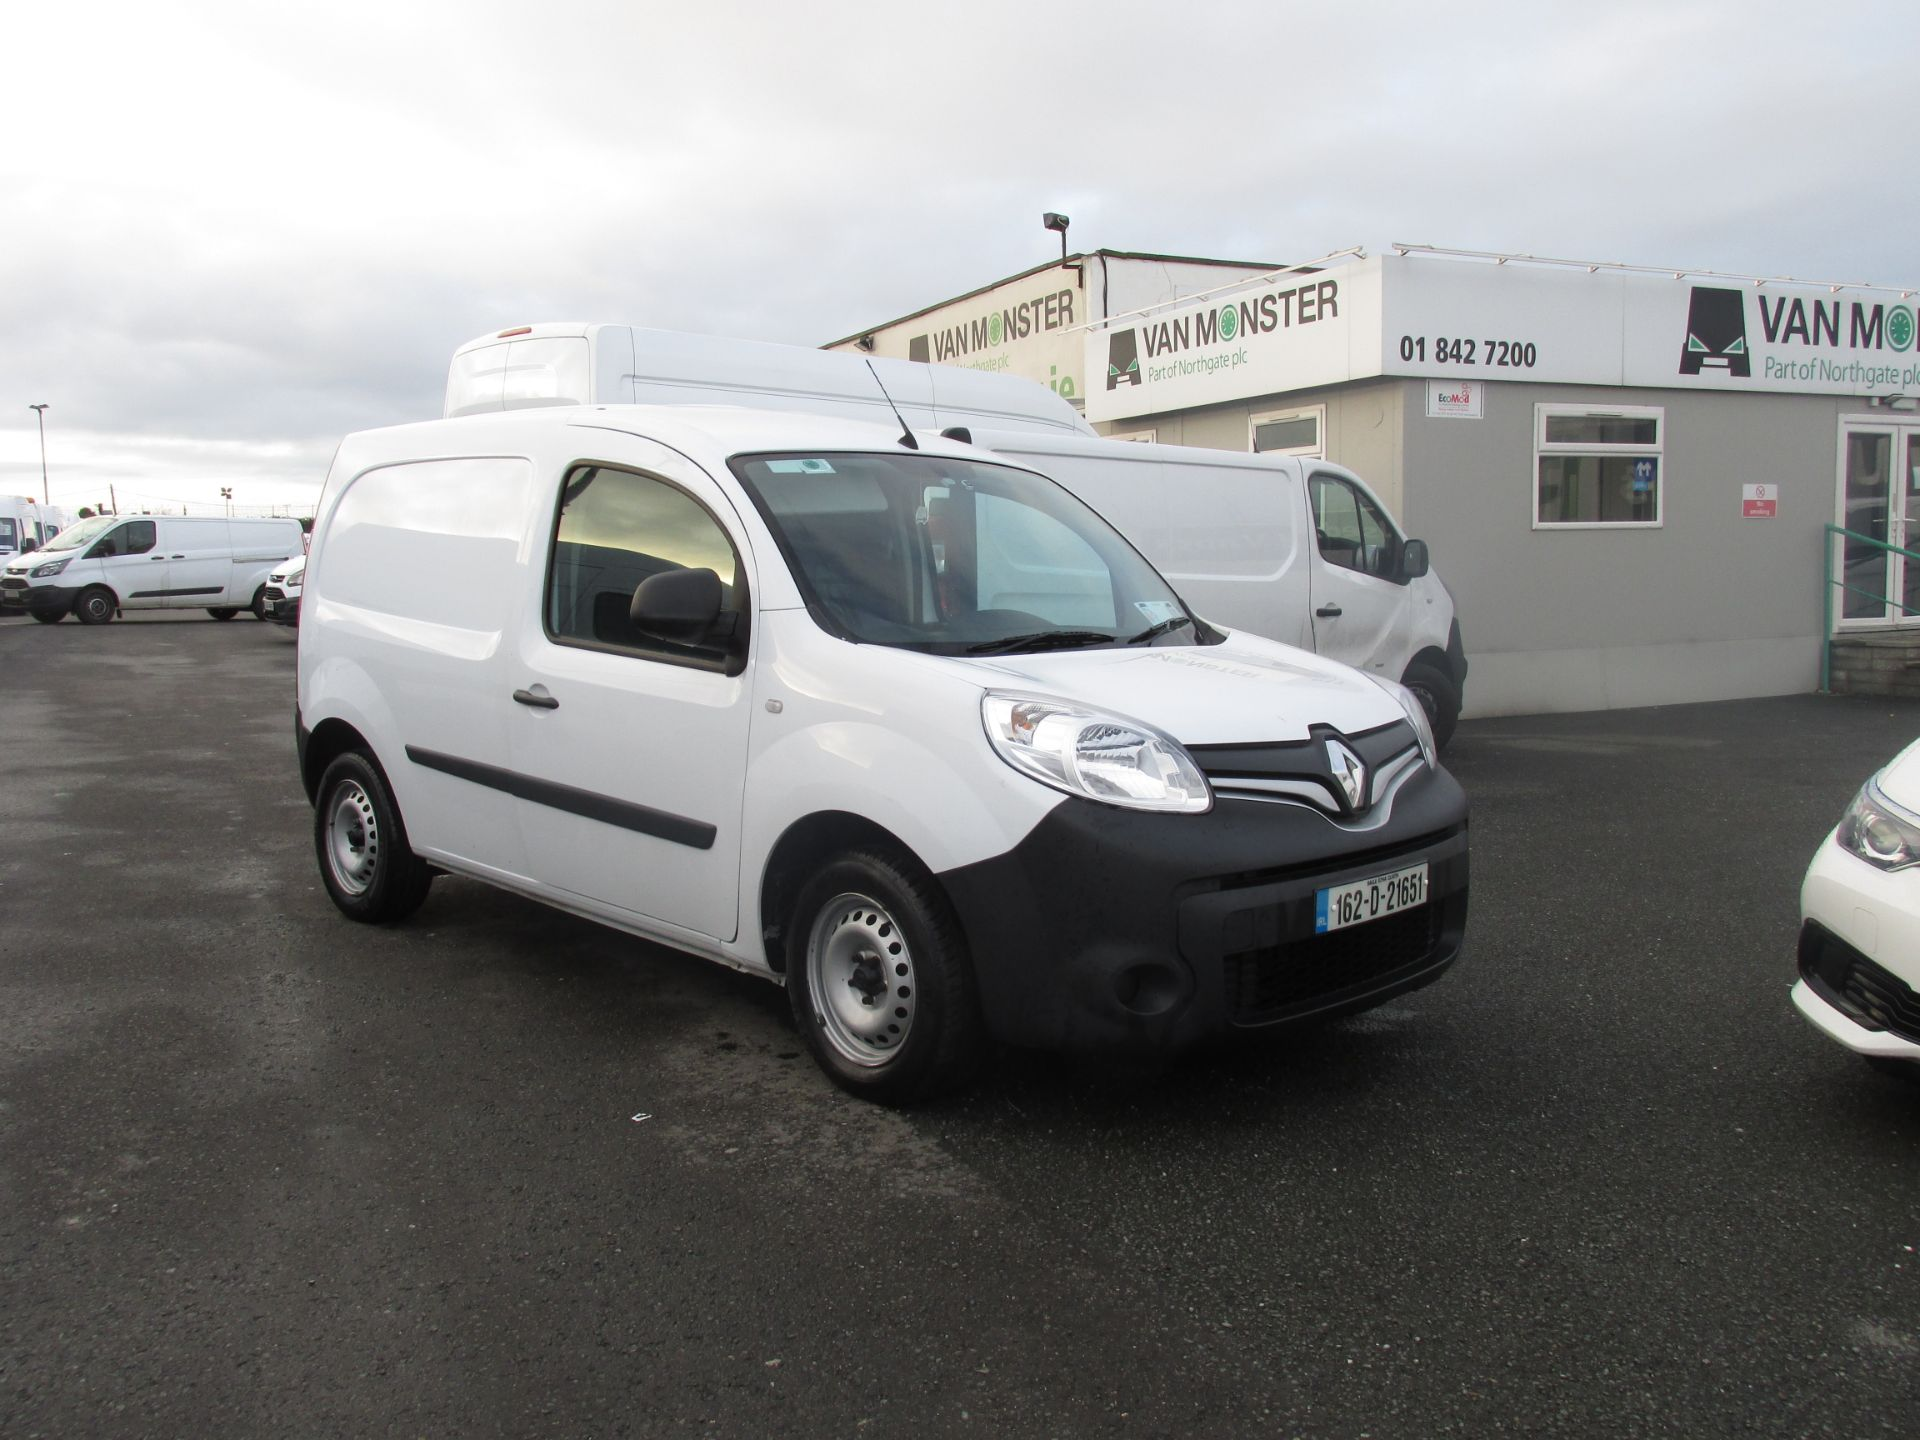 2016 Renault Kangoo ML19 Energy DCI 75 Business 2D - 100 VANS TO VIEW IN VM SANTRY DUBLIN - (162D21651) Image 1